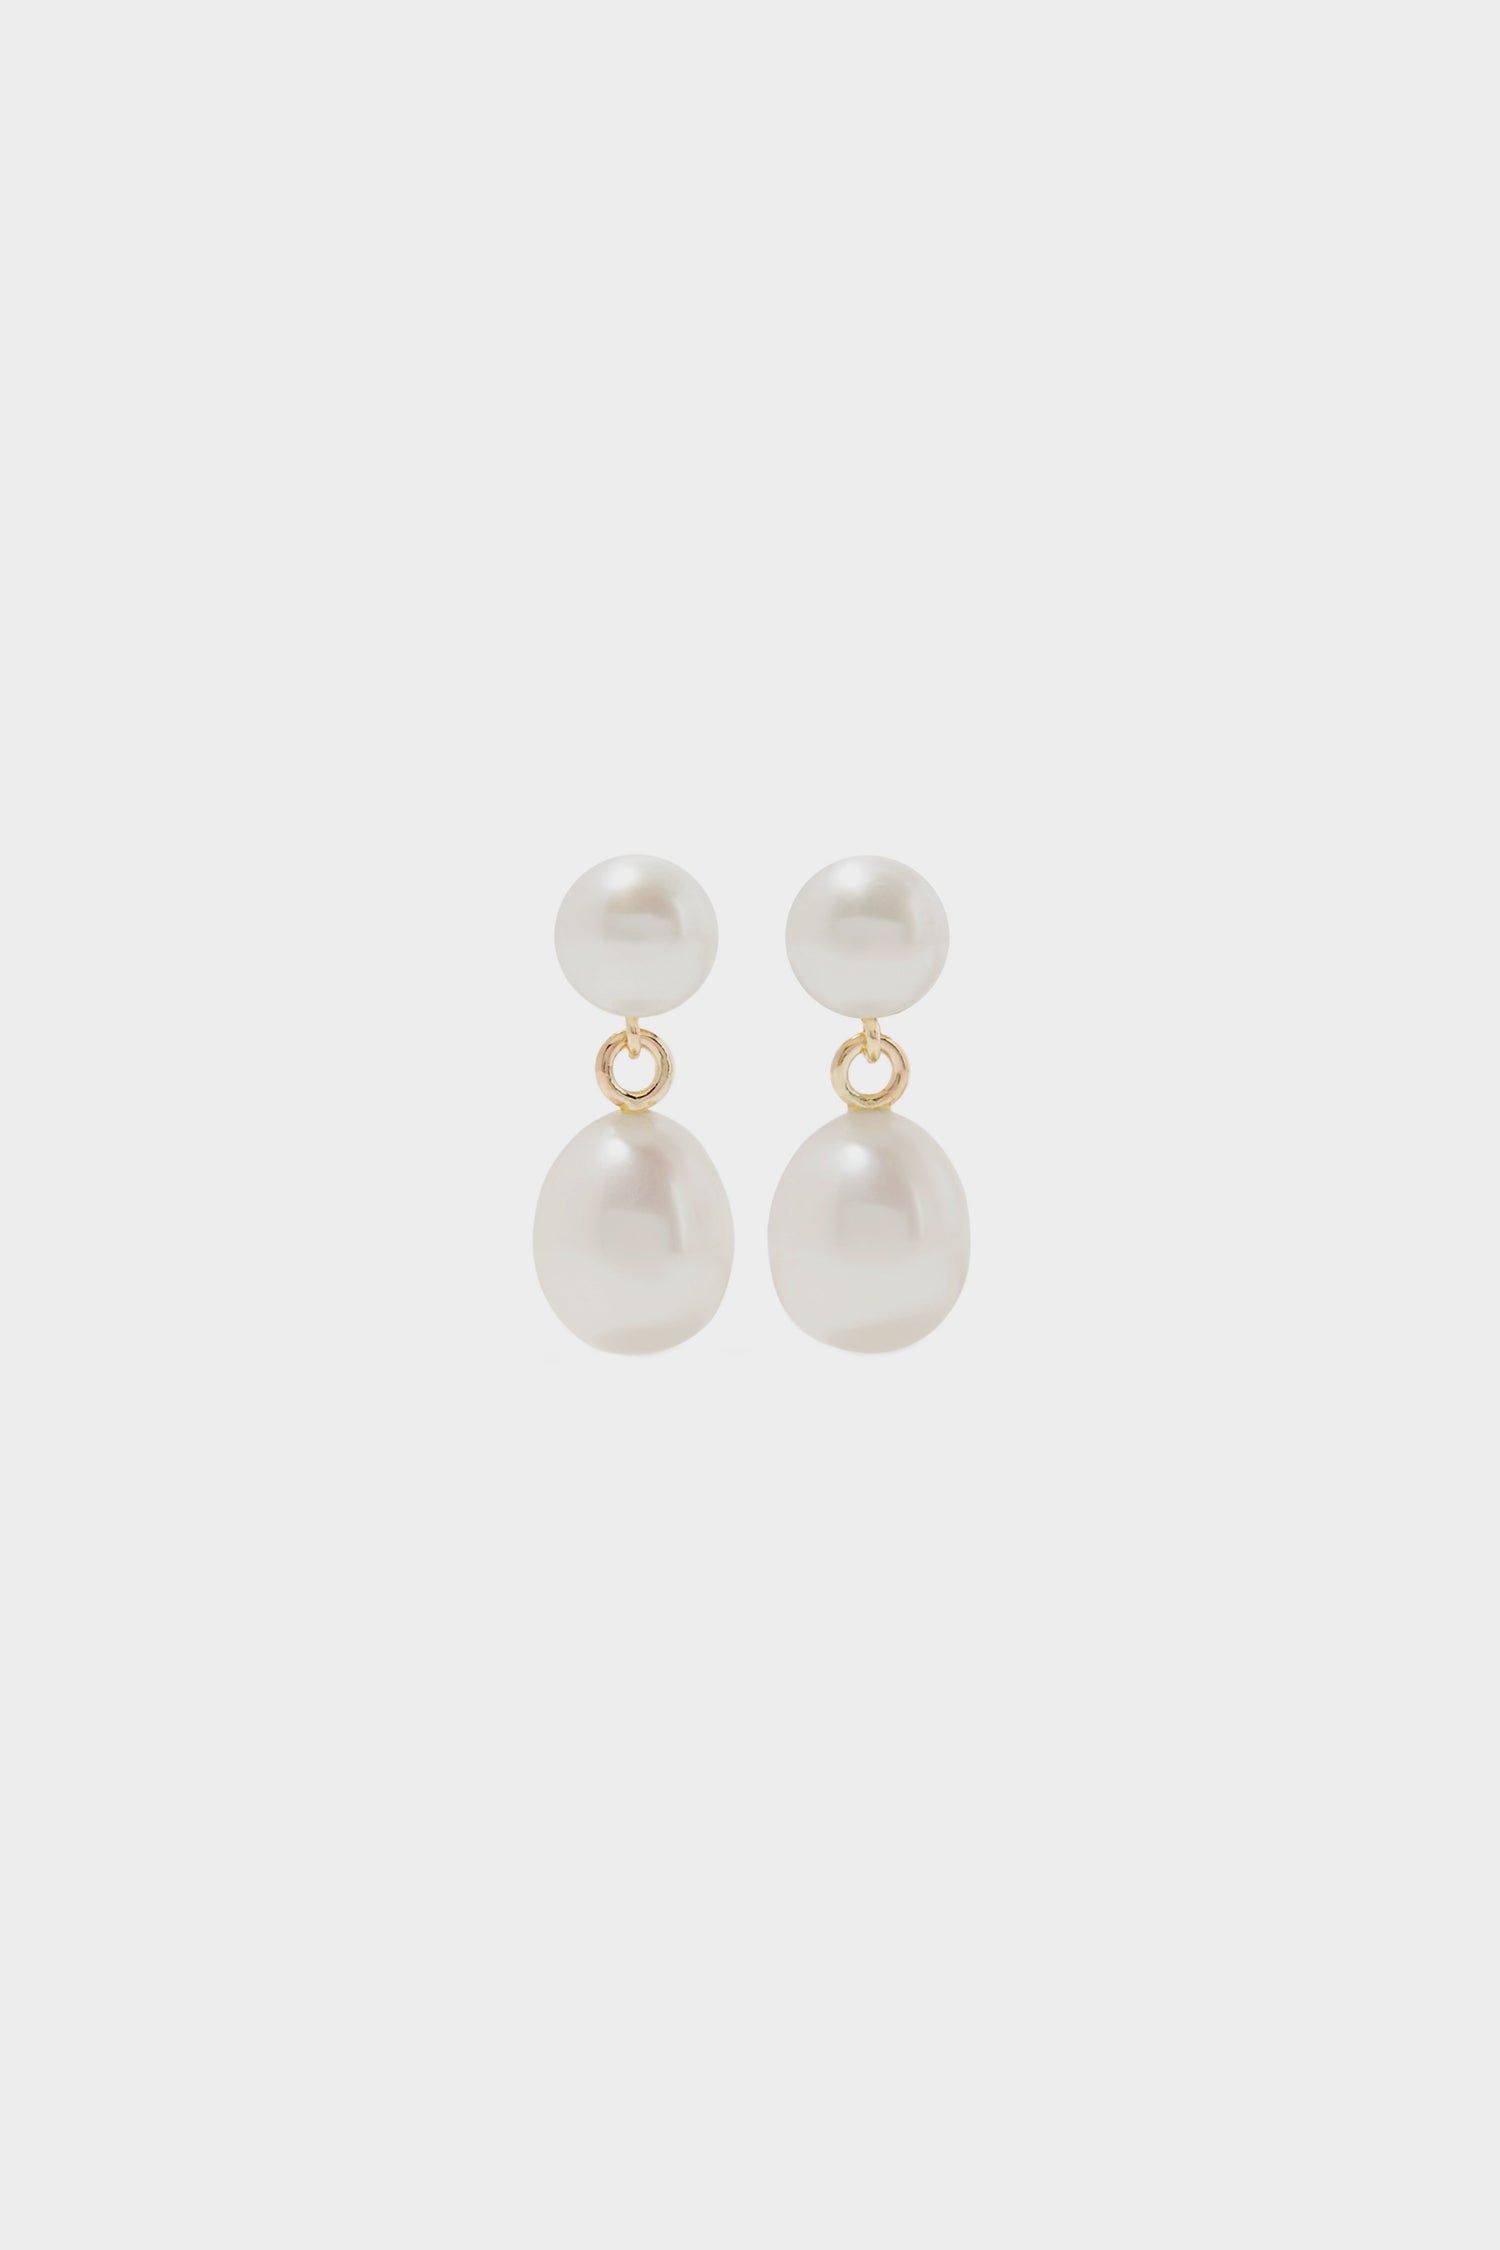 Double Pearl Drop Earrings | 9K Yellow Gold